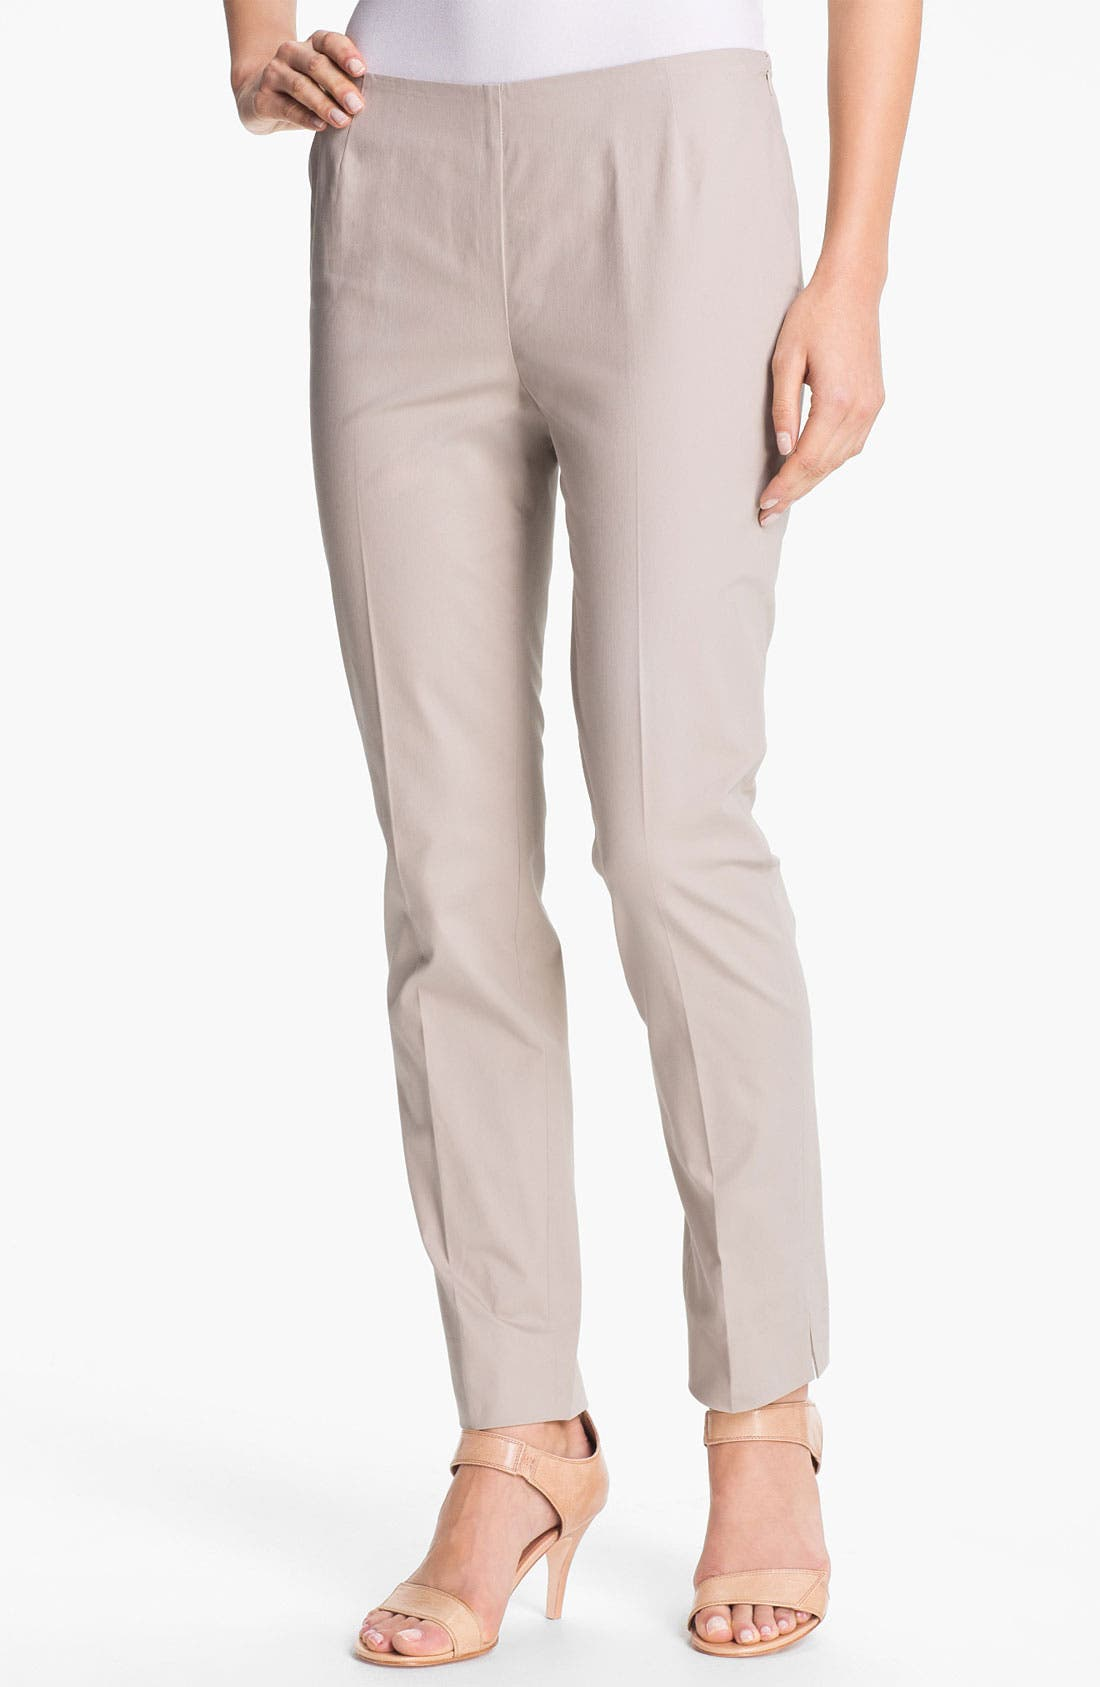 Alternate Image 1 Selected - Lafayette 148 New York Casual Cotton Side Zip Ankle Pants (Regular & Petite)